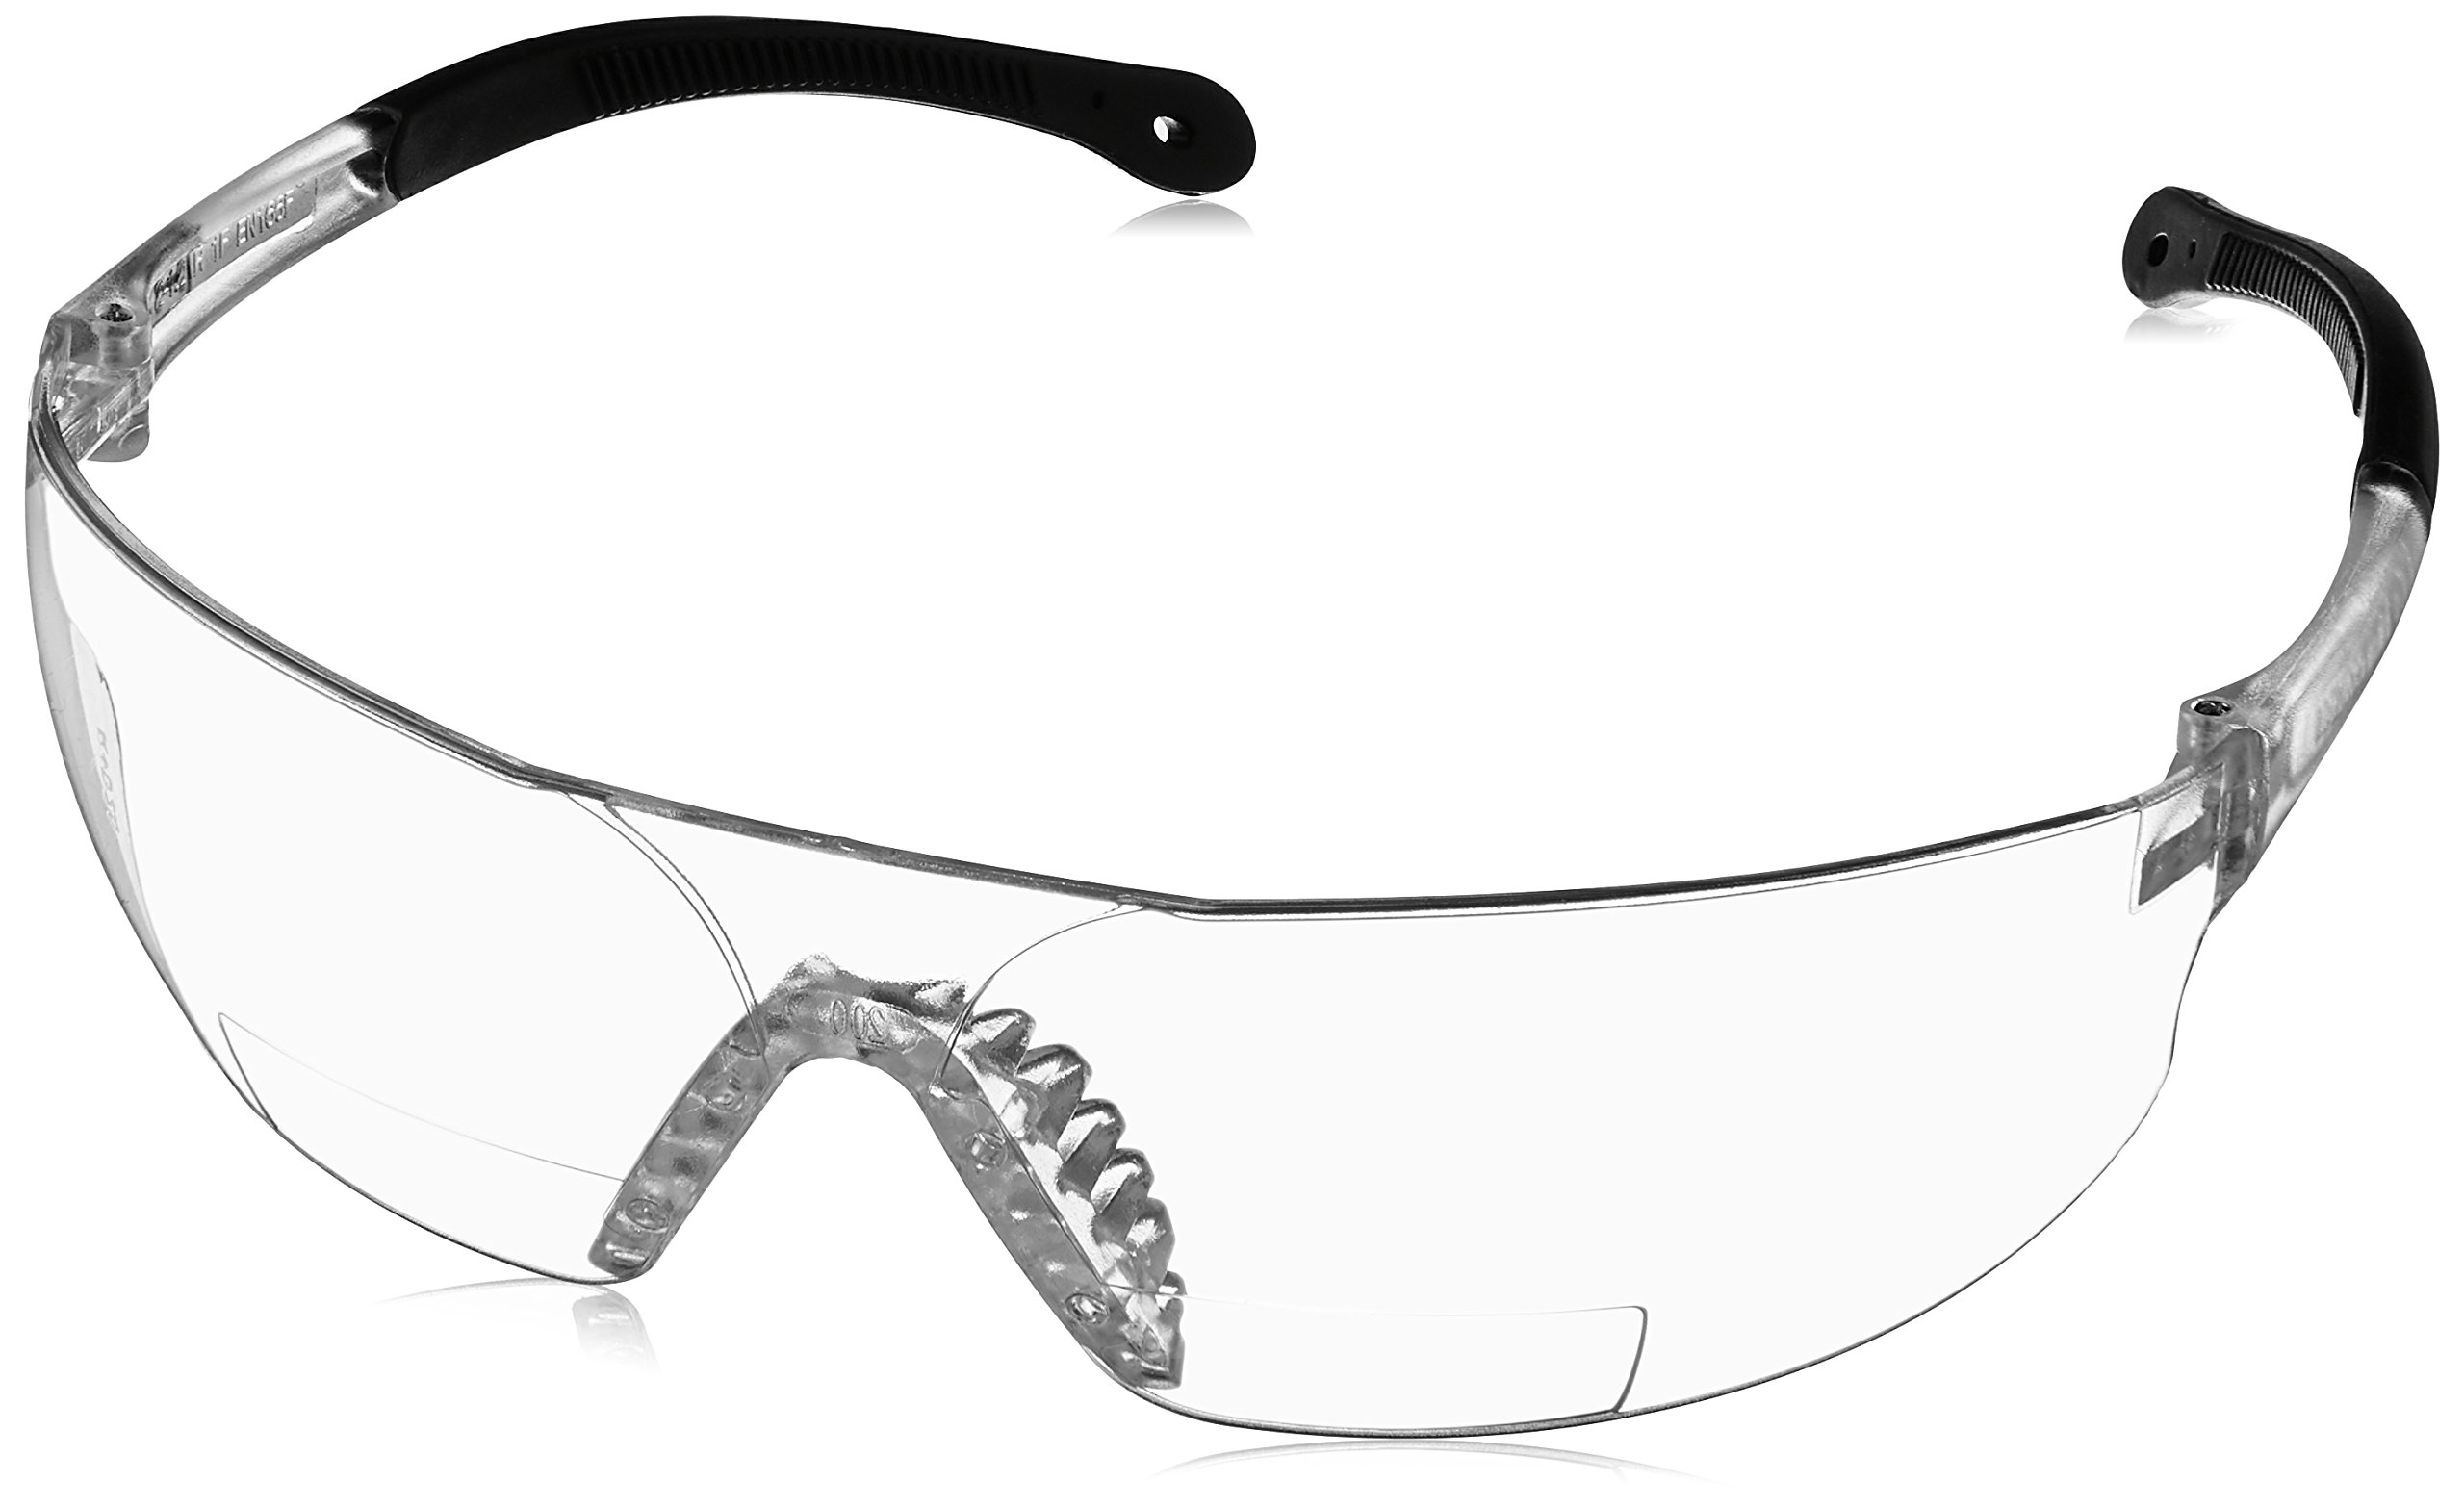 K-T Industries 4-2458 RSX Bifocal 2.0 SAFETY Glasses